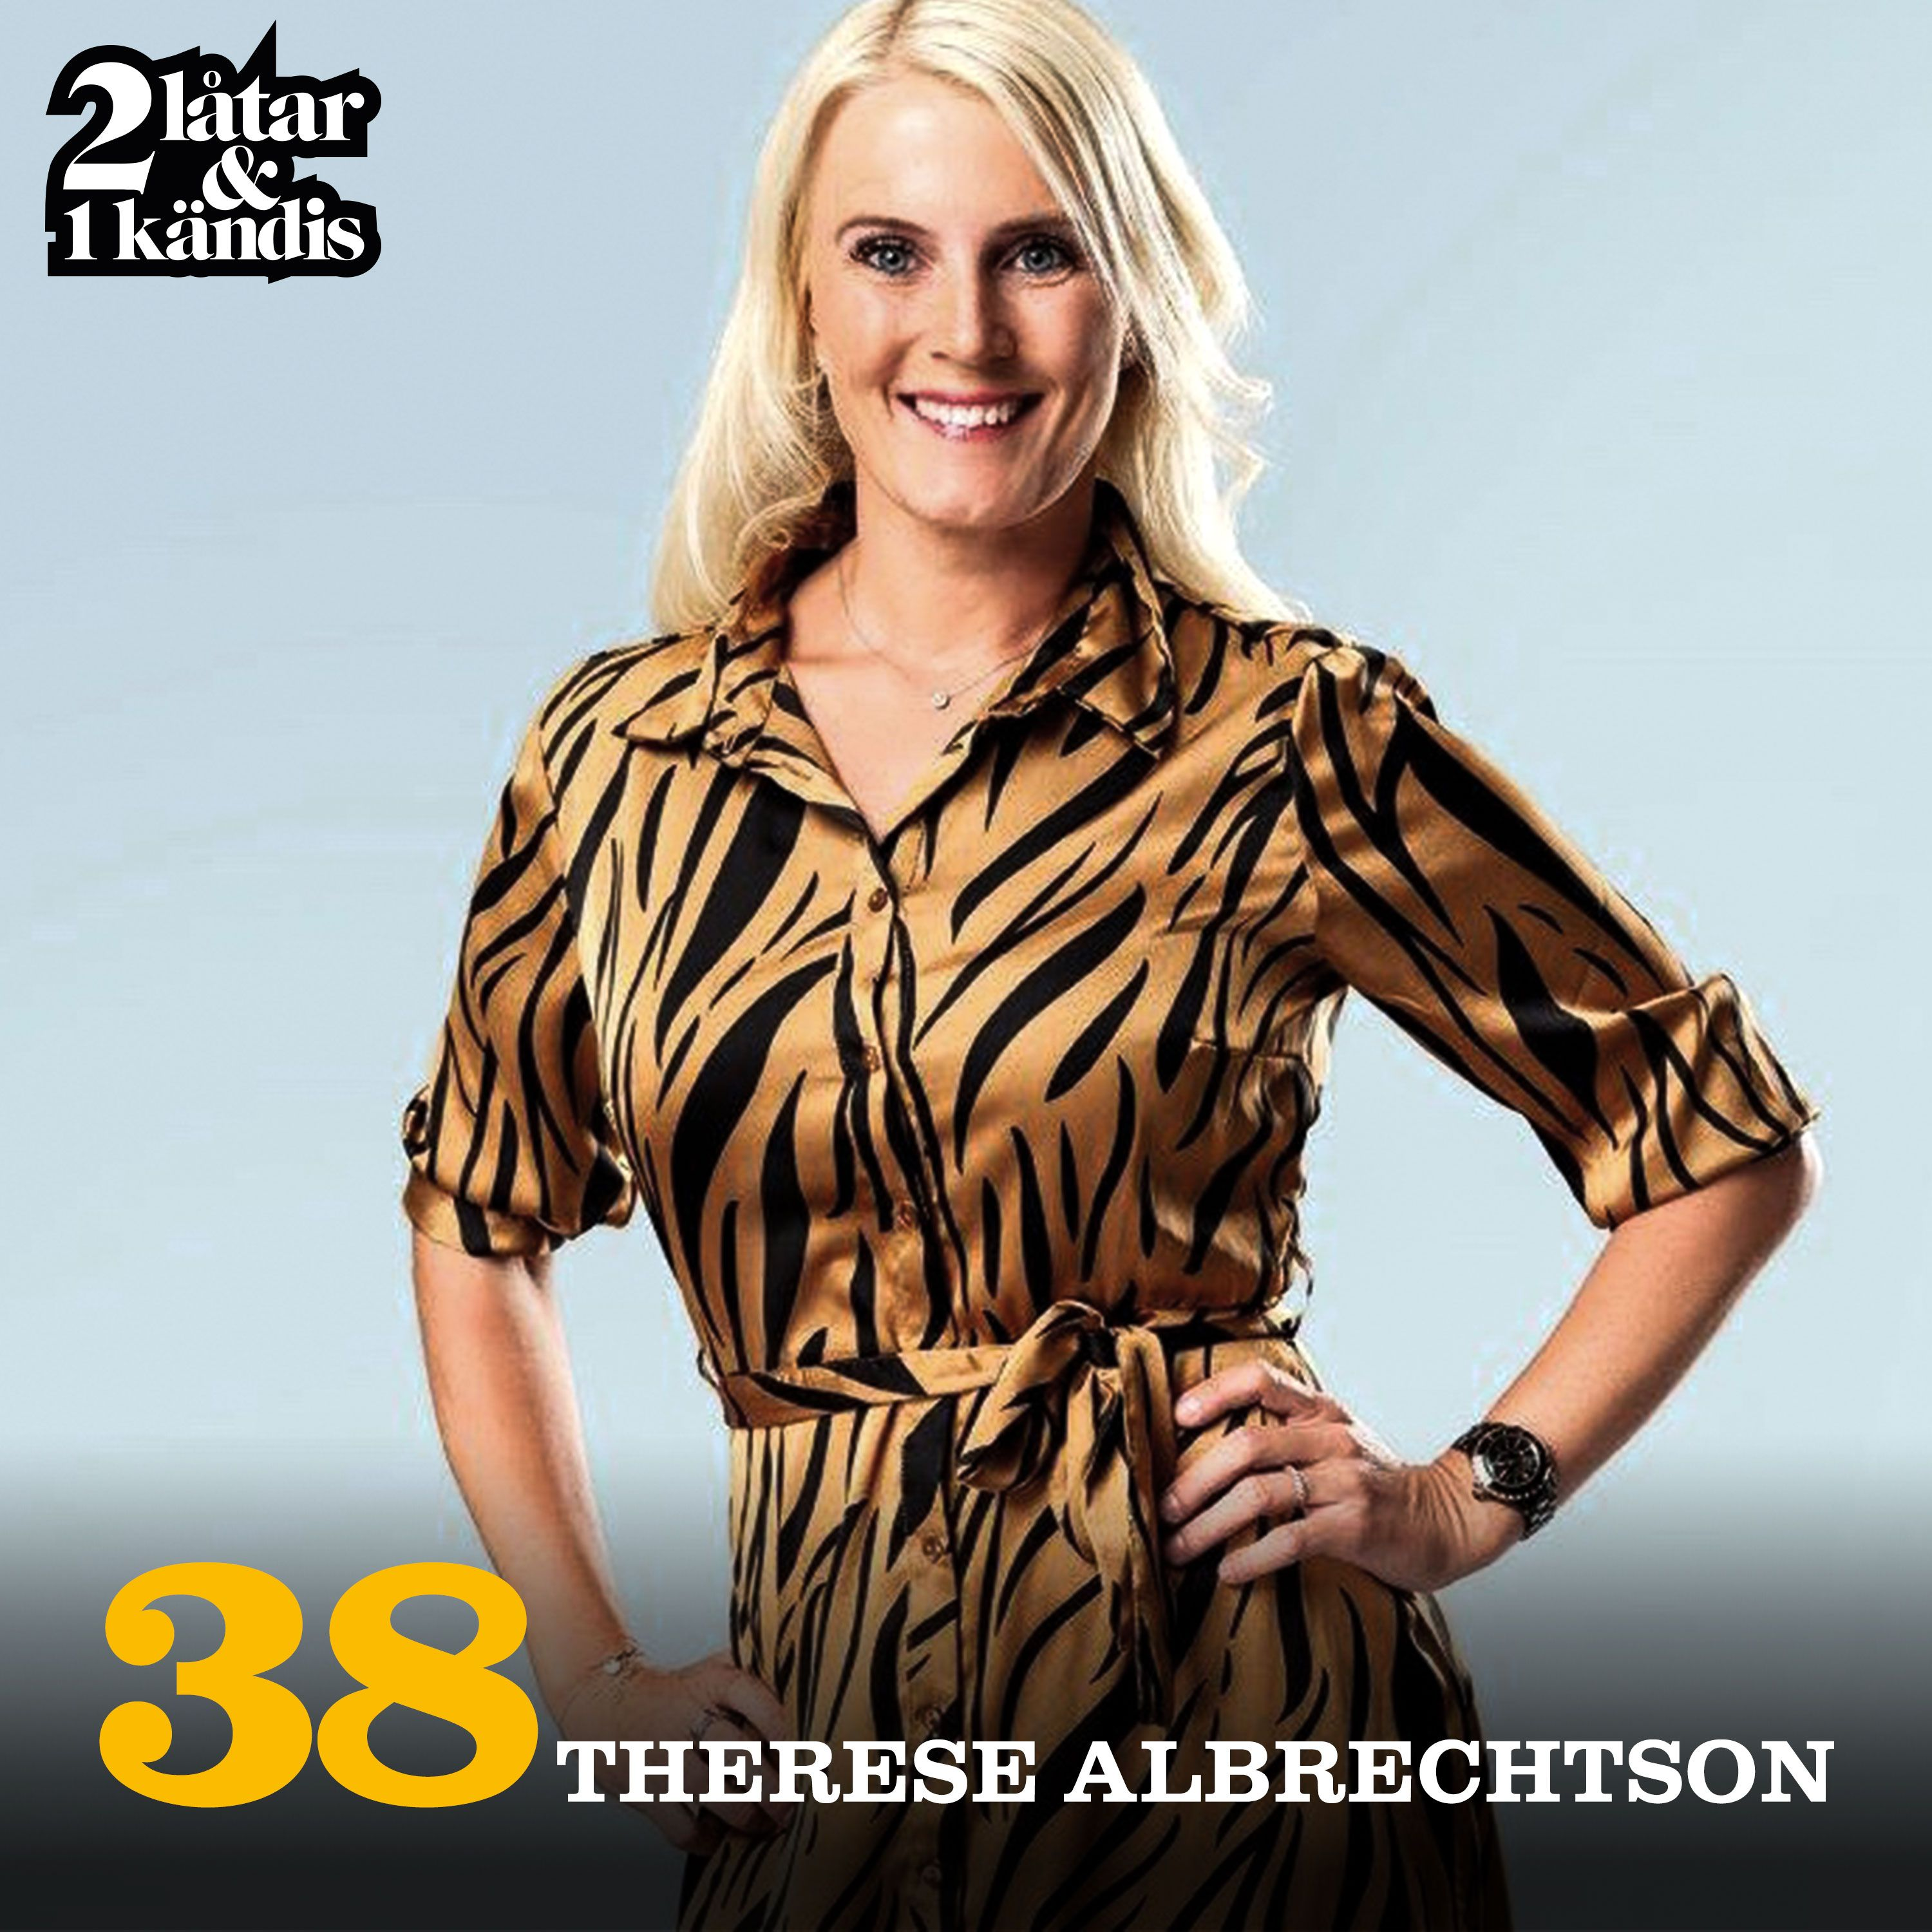 Therese Albrechtsson